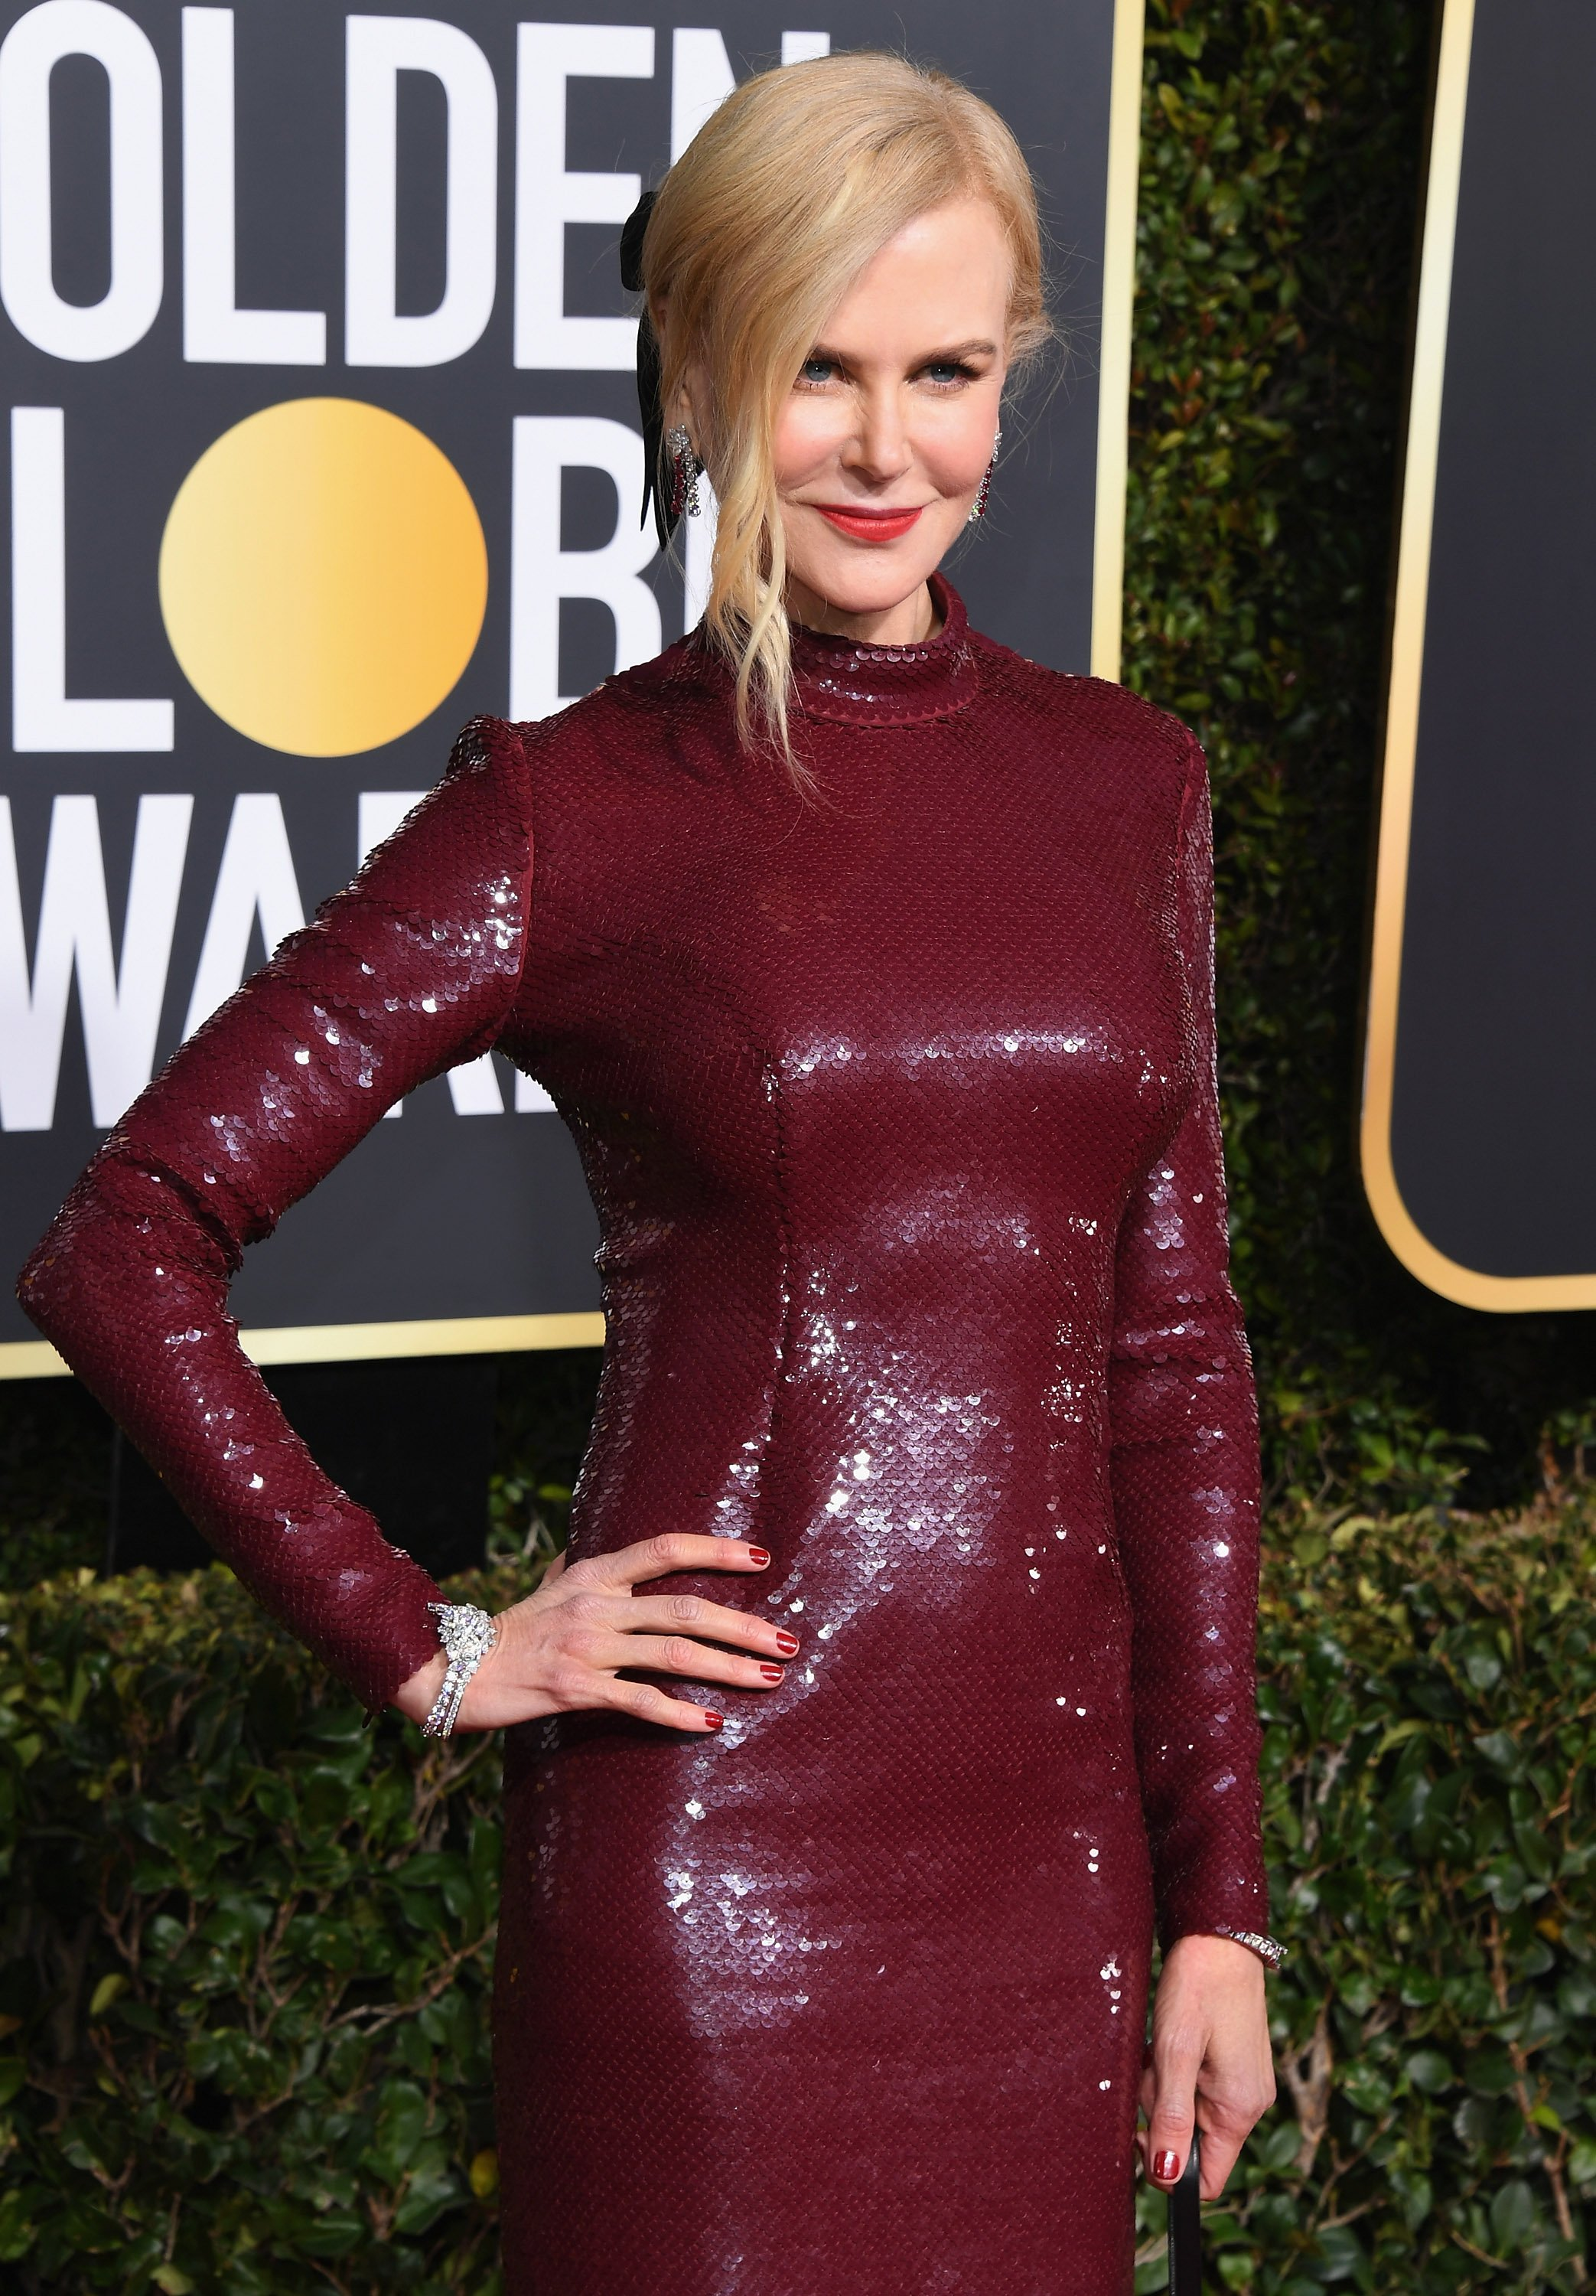 Nicole Kidman attends the 76th Annual Golden Globe Awards at The Beverly Hilton Hotel on January 6, 2019 in Beverly Hills, California | Photo: Getty Images